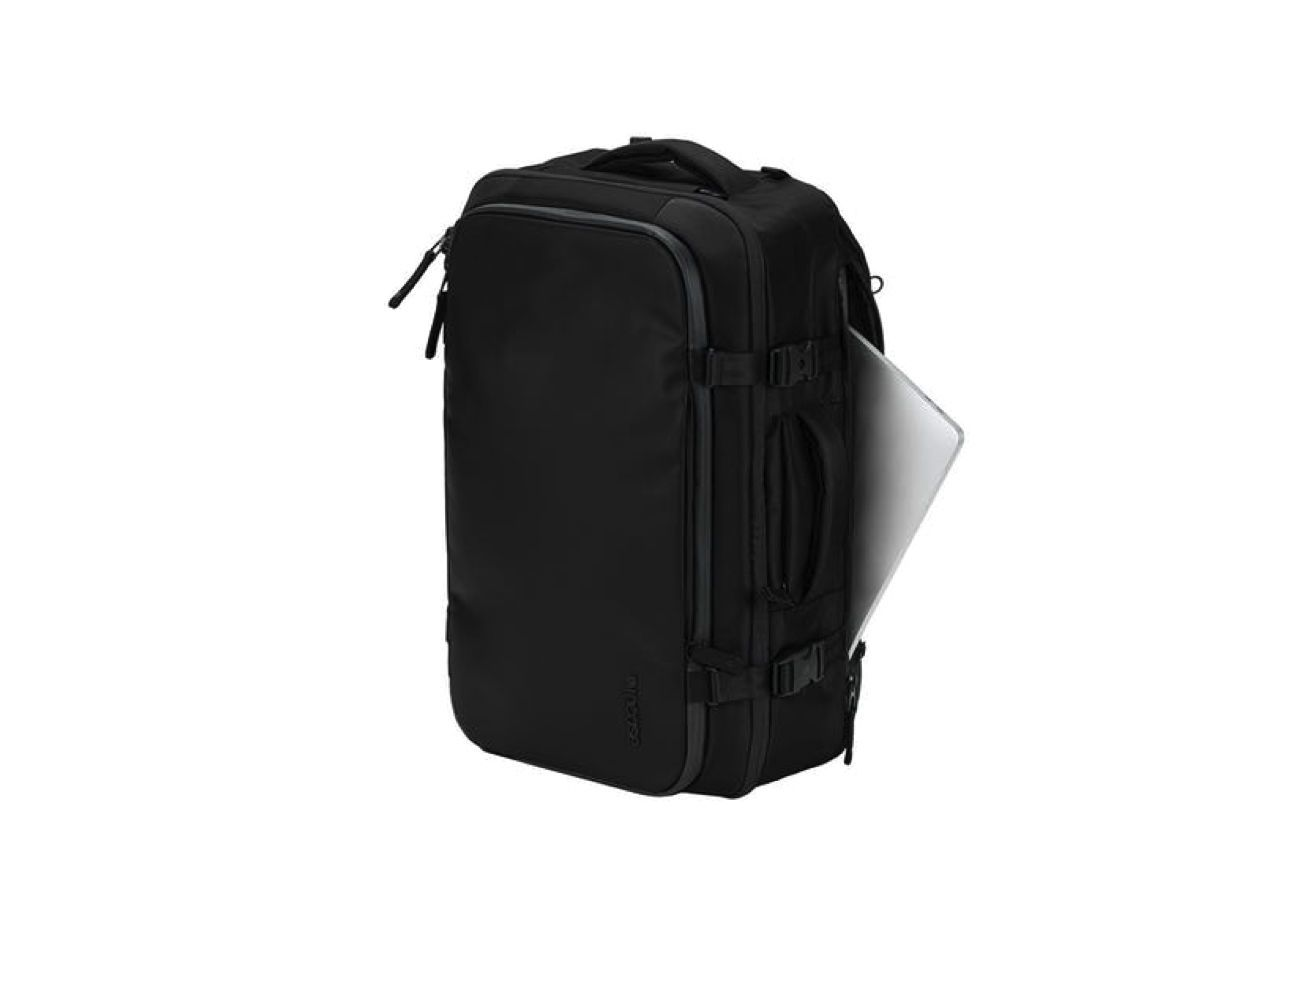 Incase Tracto Convertible Duffle Backpack